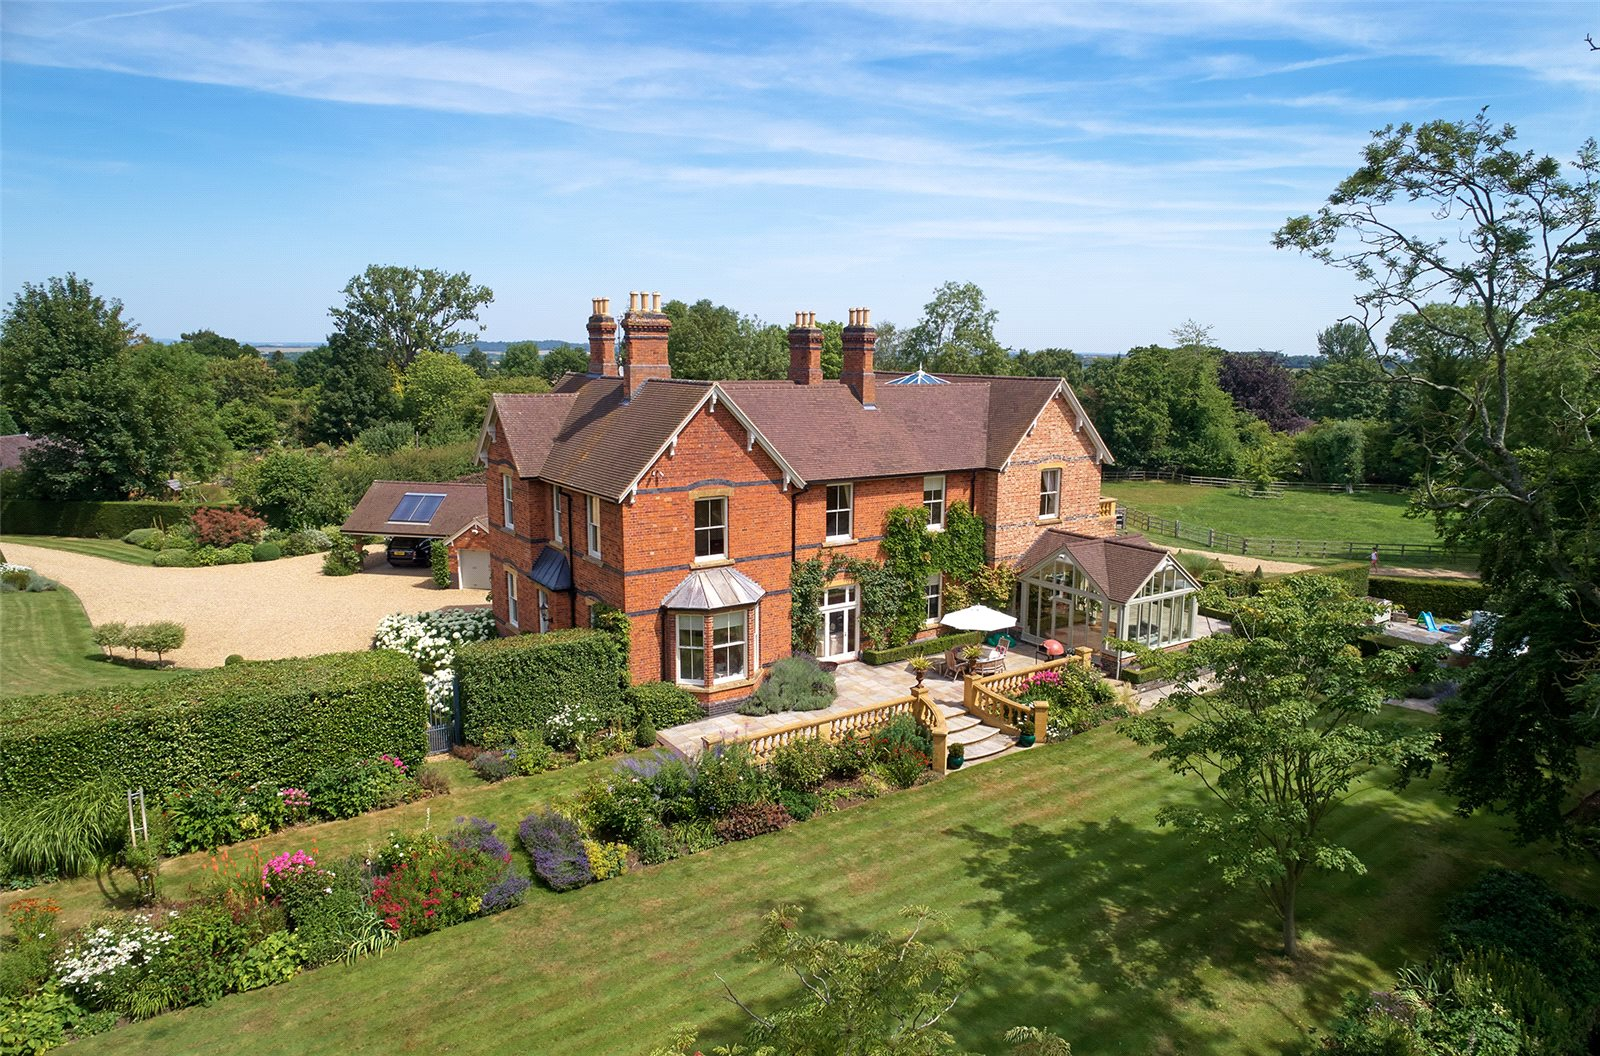 Single Family Home for Sale at Elmley Castle, Pershore, Worcestershire, WR10 Pershore, England